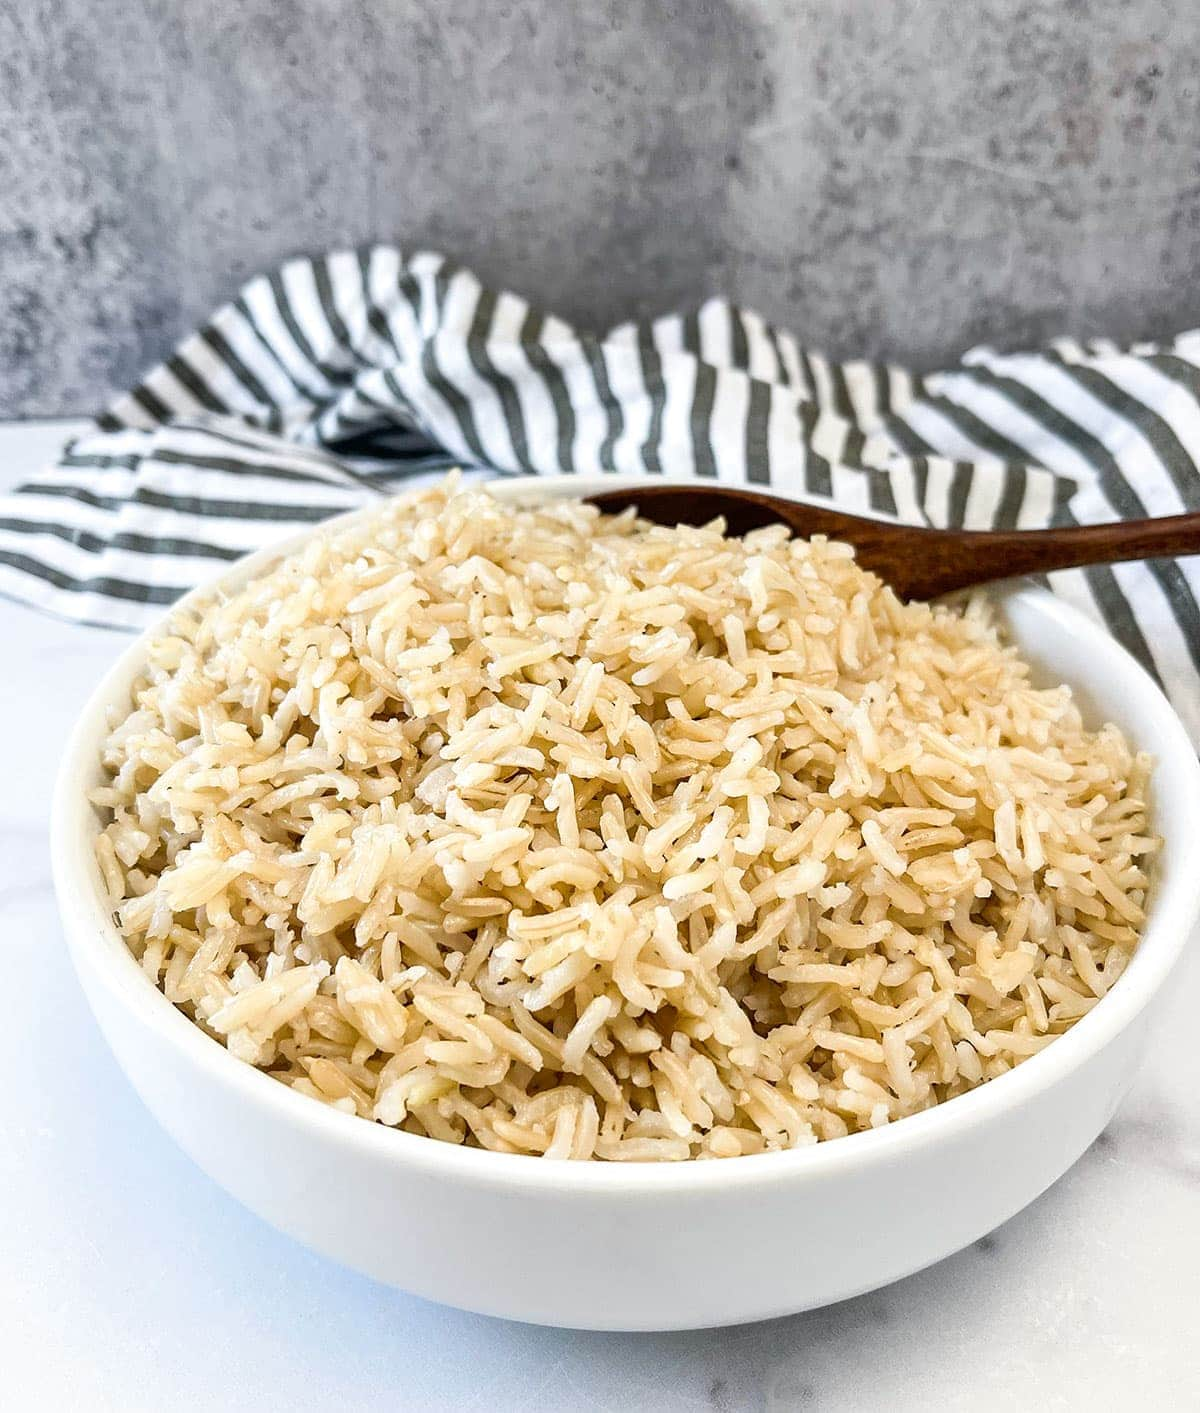 basmati rice instant pot version in a white bowl on a white background